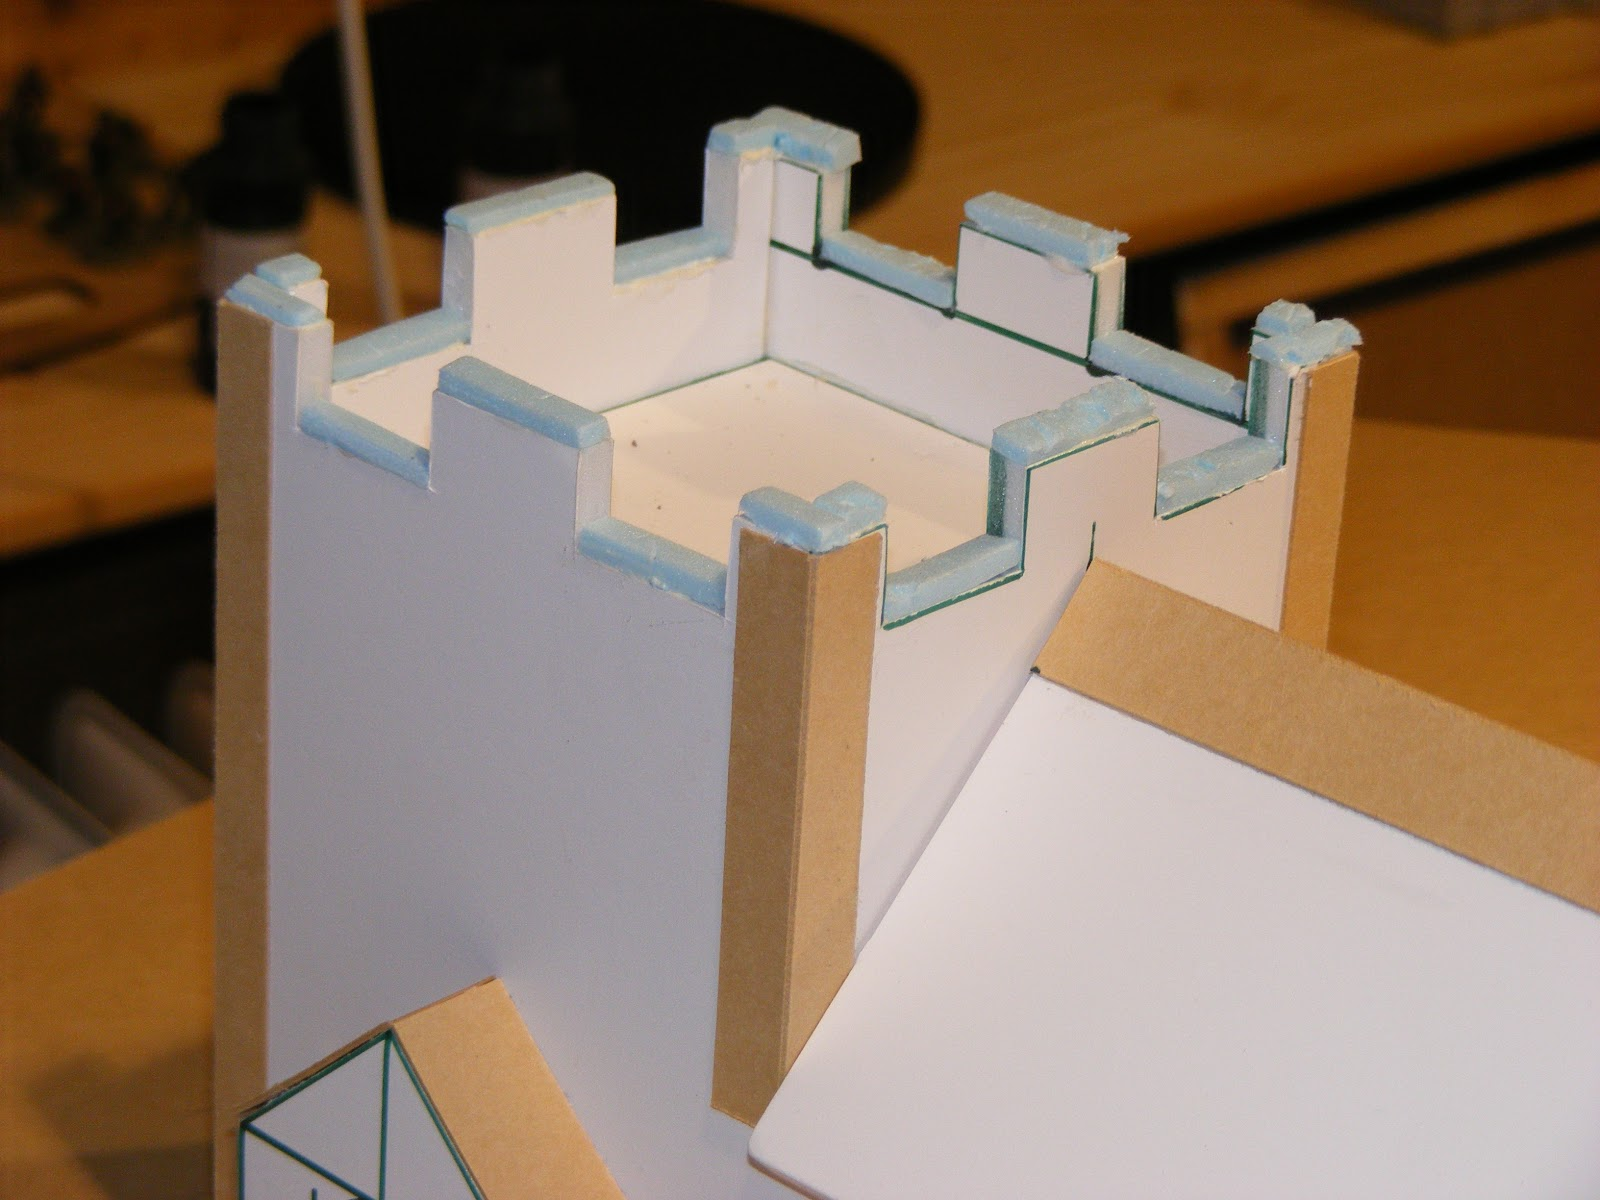 how to make revit a thin paper model